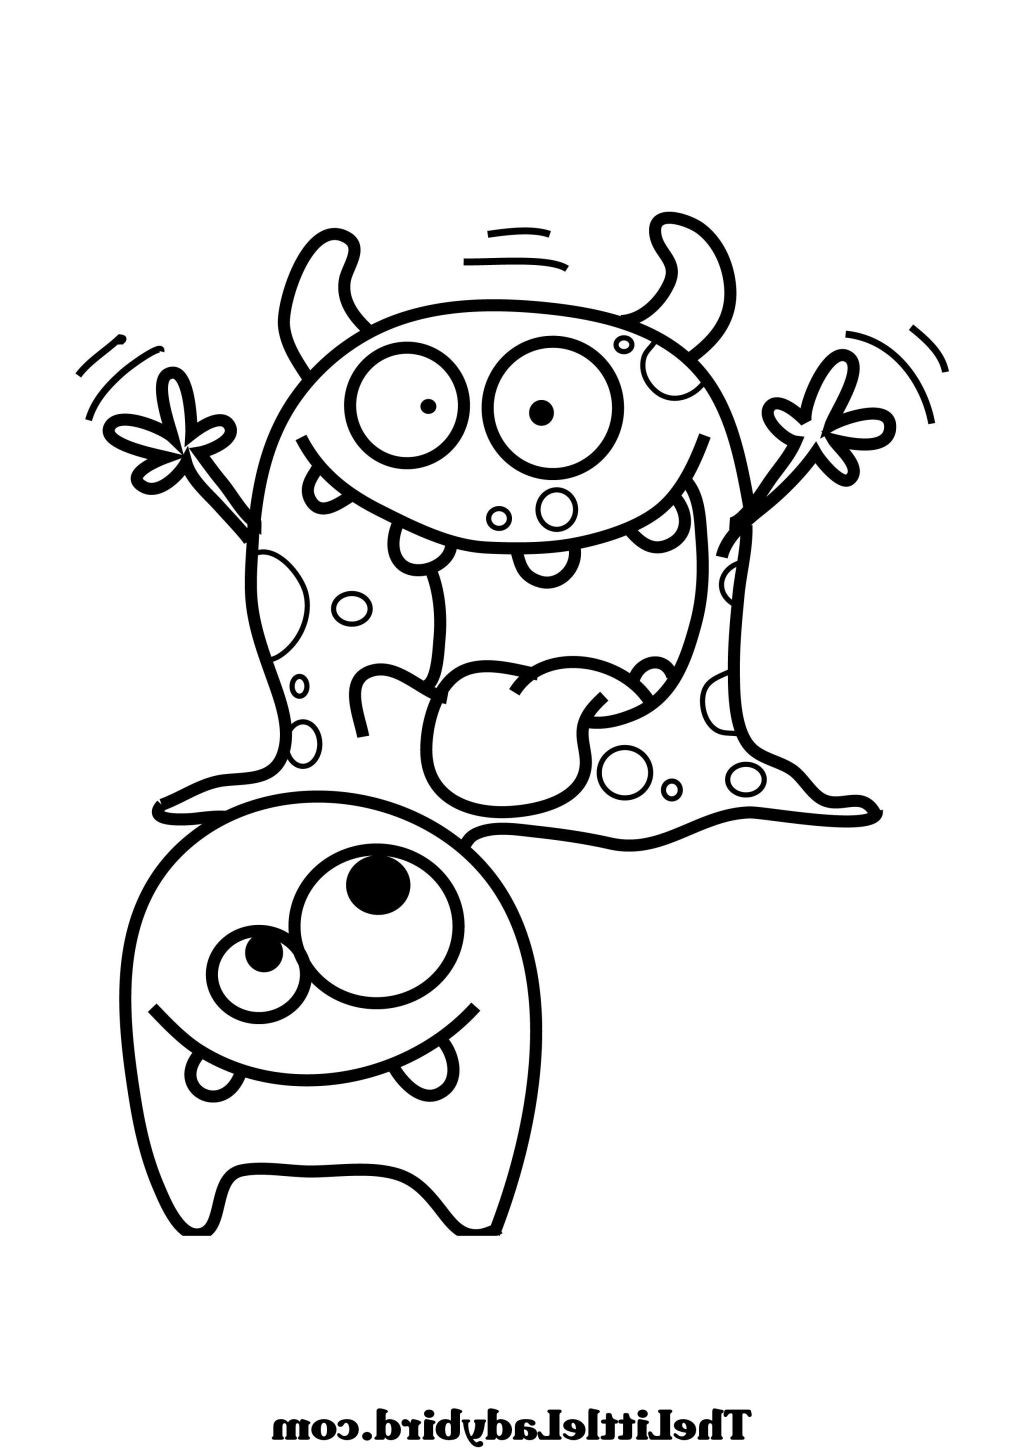 1024x1448 Monster Coloring Pages Sheets Kids Ribsvigyapan Funny Monster